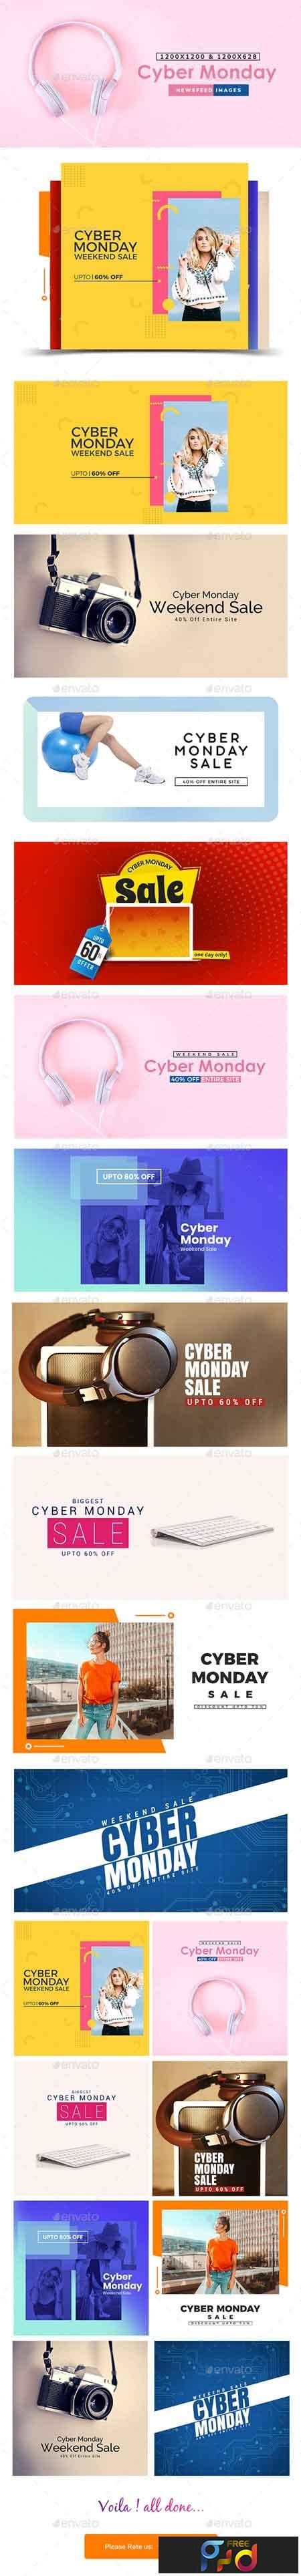 Cyber Monday Sale Facebook and Instagram Newsfeed Banners - 10